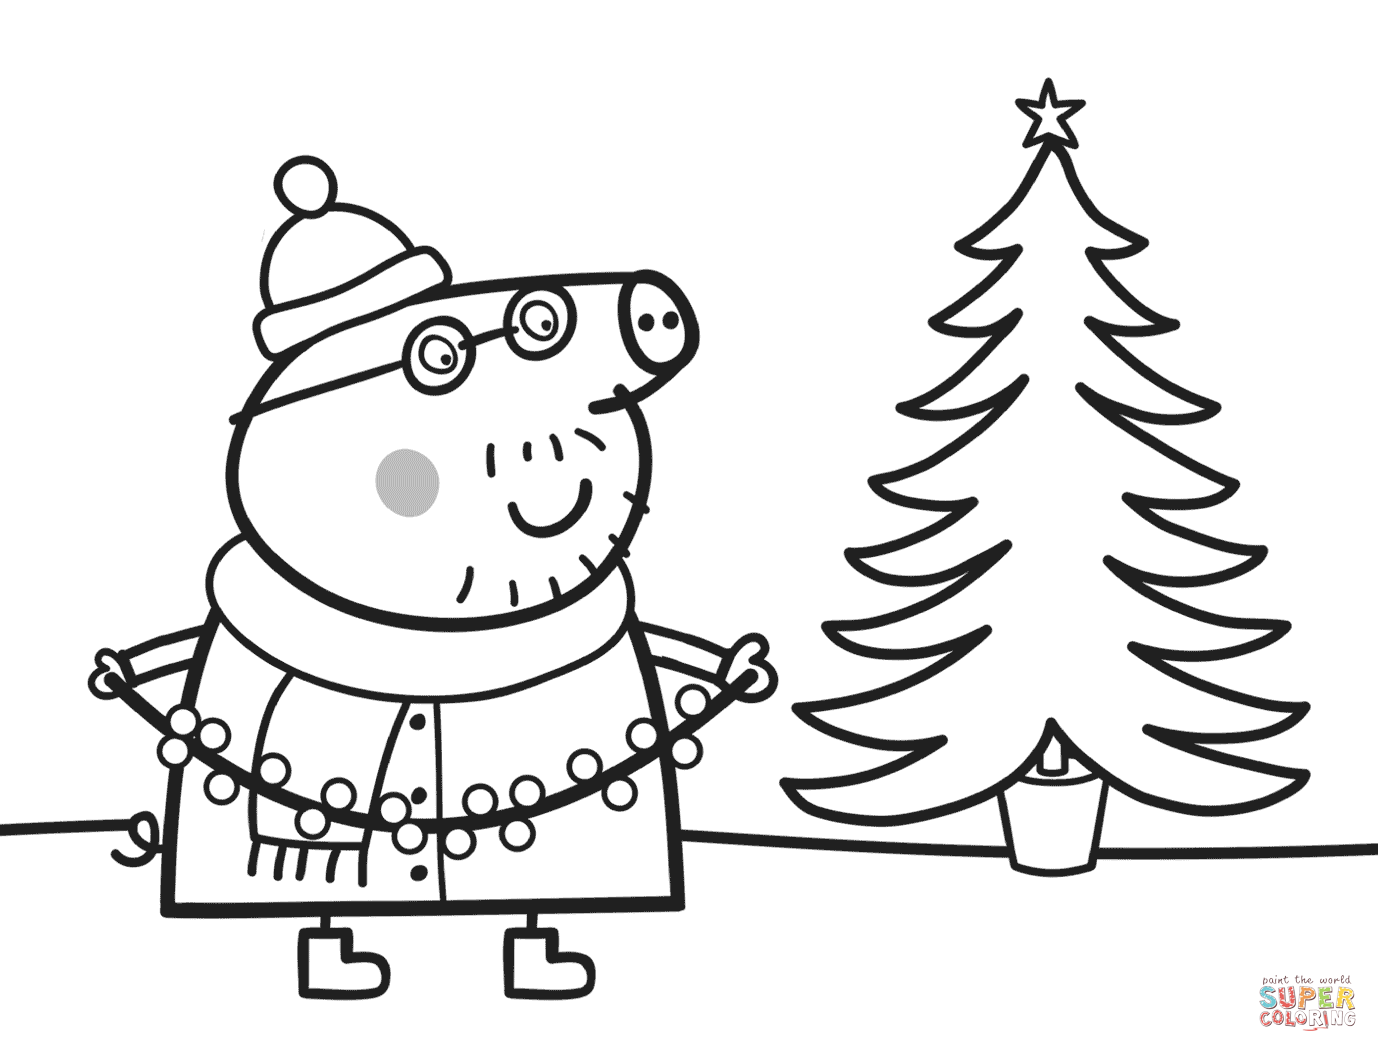 Daddy pig decorates xmas tree coloring page free printable coloring pages